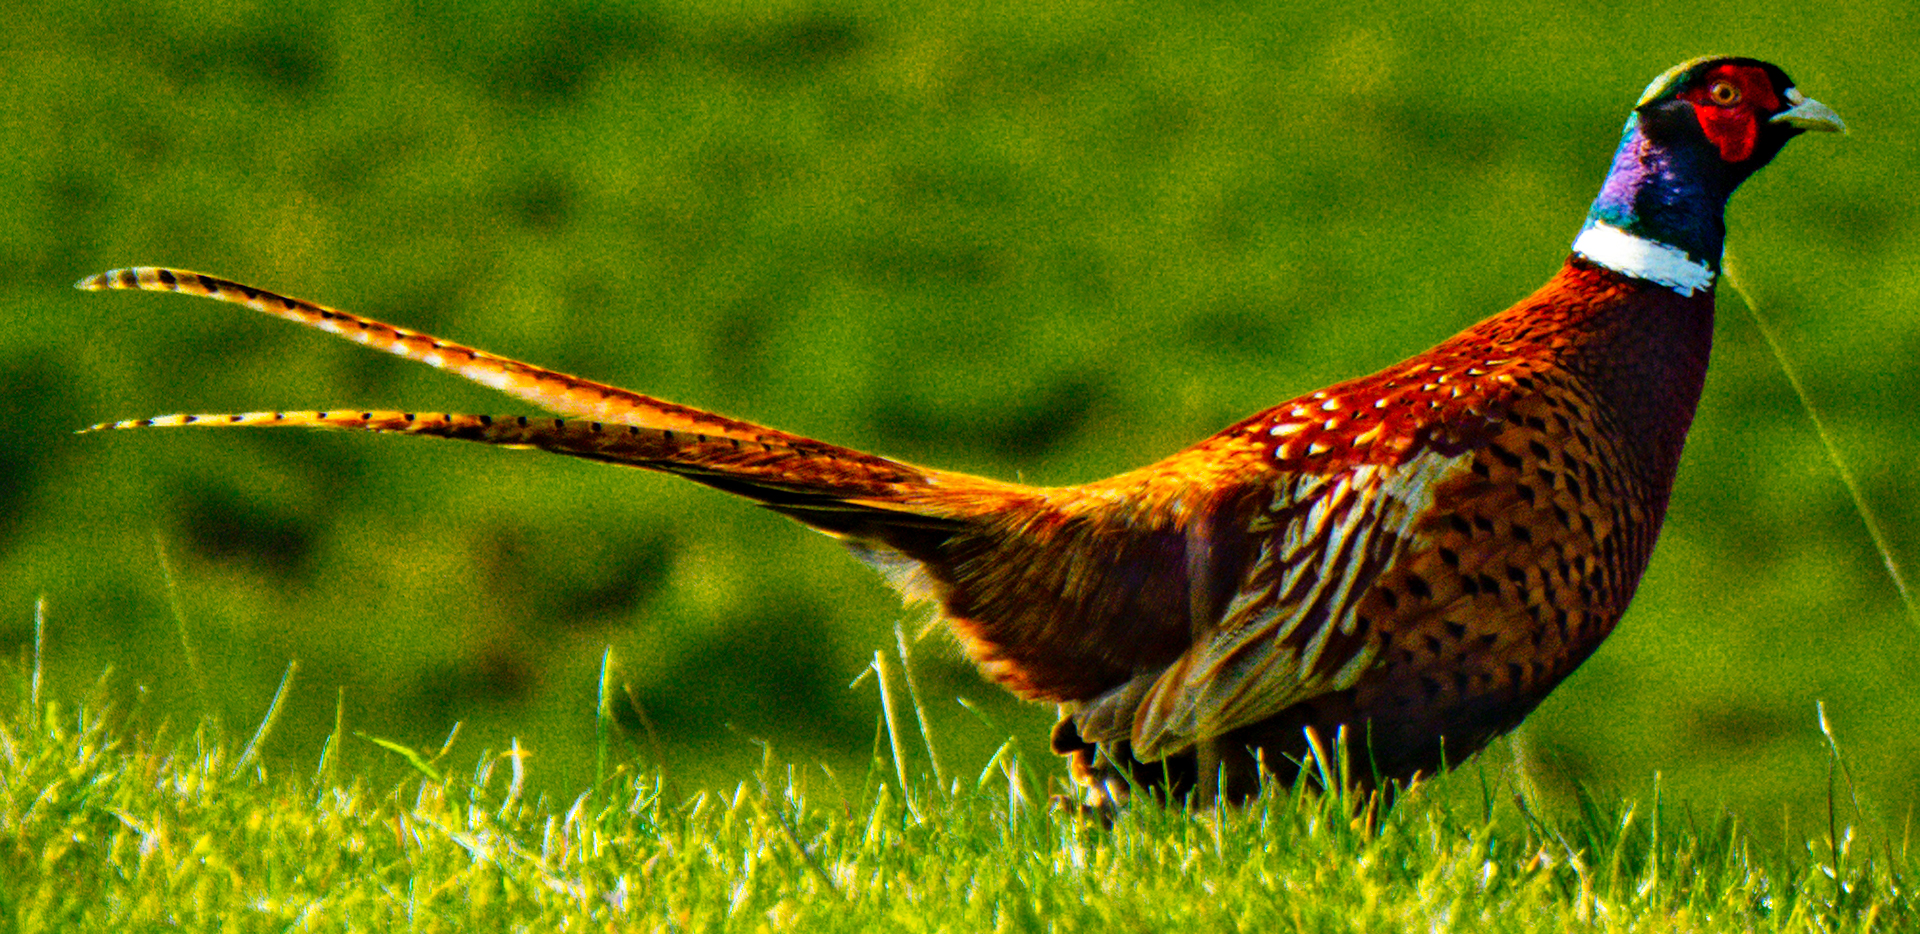 Pheasant in the English Countryside